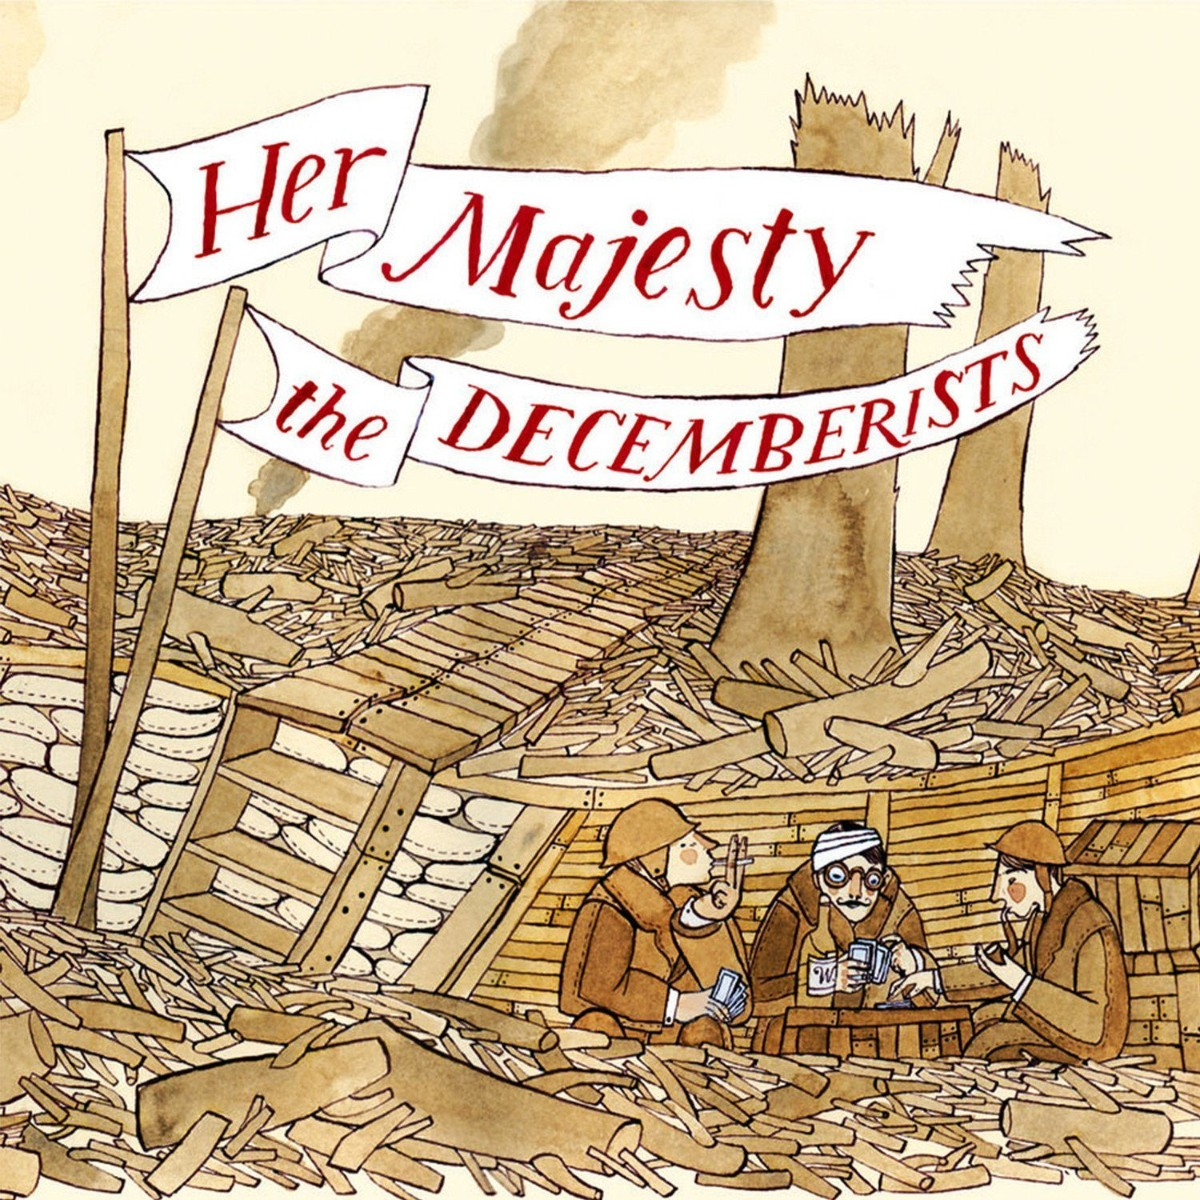 The Decemberists 'Her Majesty The Decemberists' CD